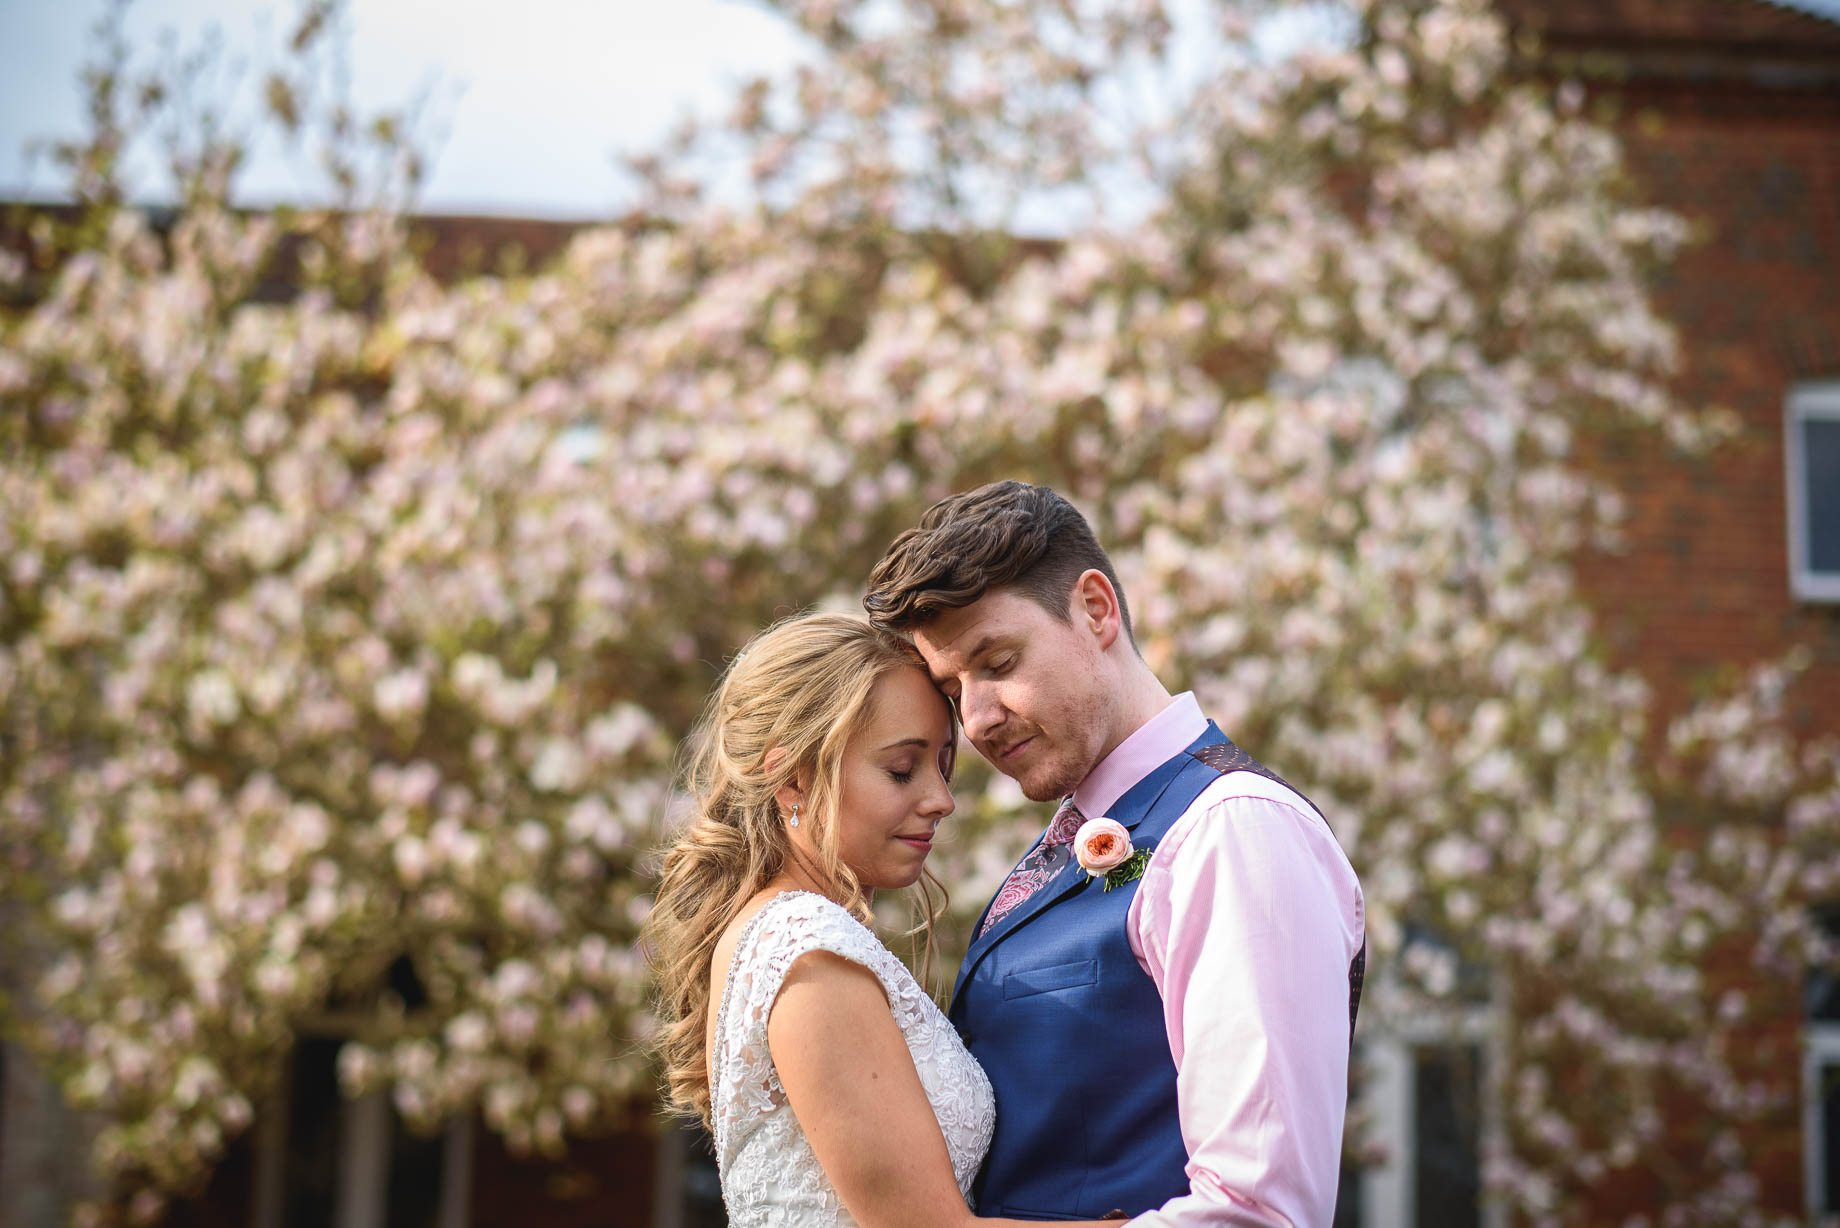 Hampshire wedding photography by Guy Collier - Emily and Tom (138 of 164)